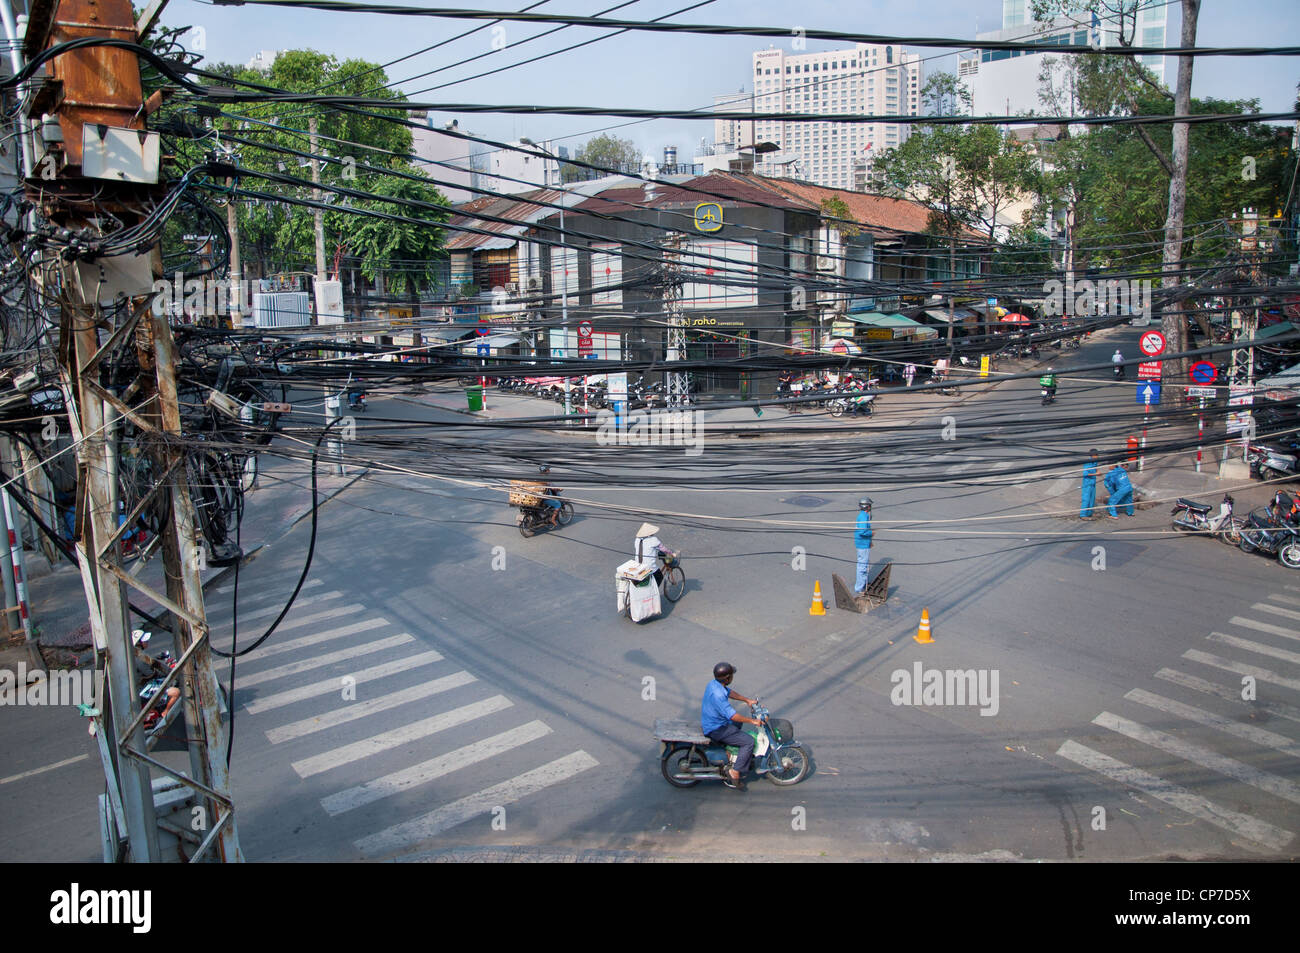 Overlooking a crossroads in District 1, Ho Chi Minh City - Stock Image